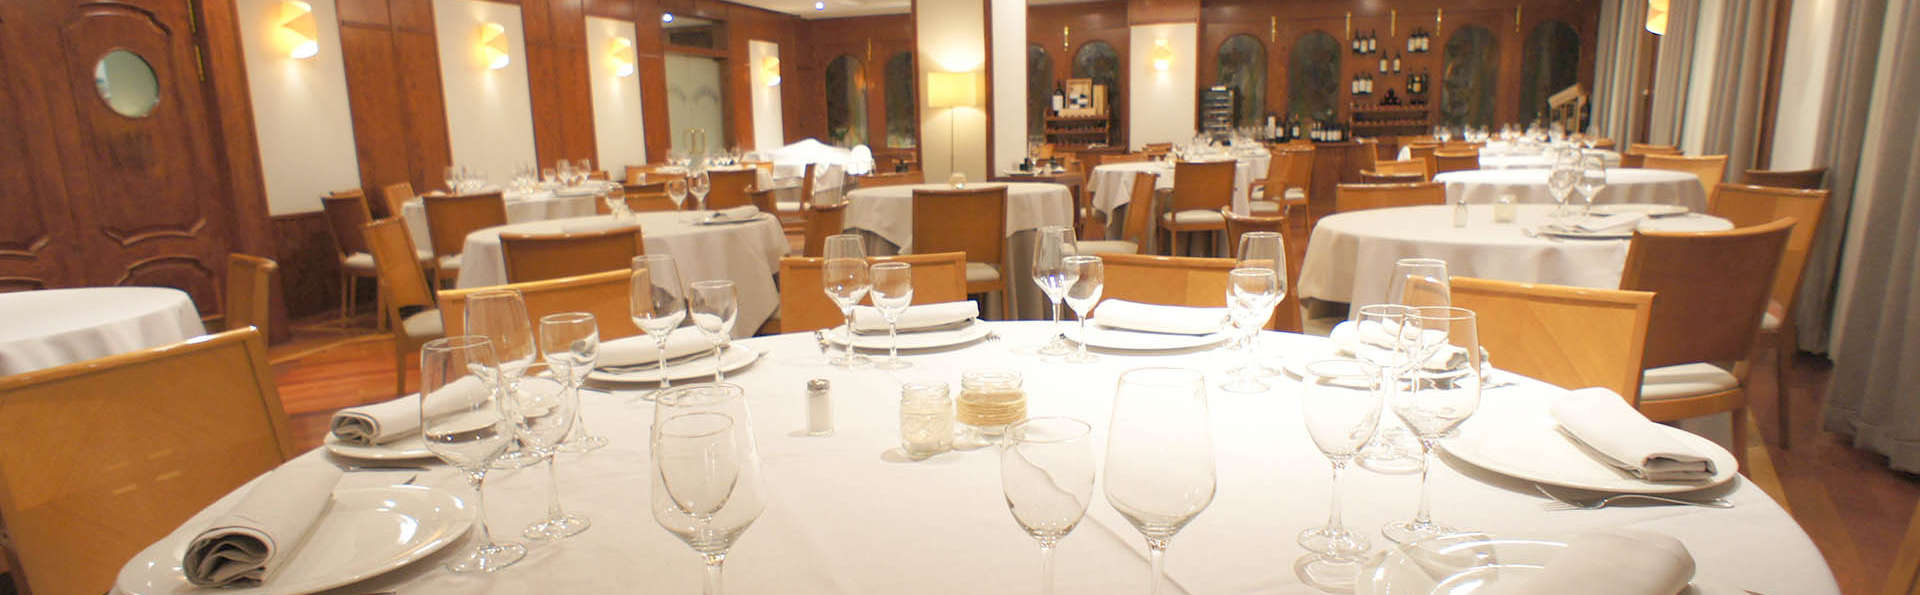 Hotel Montermoso - EDIT_RESTAURANT_01.jpg